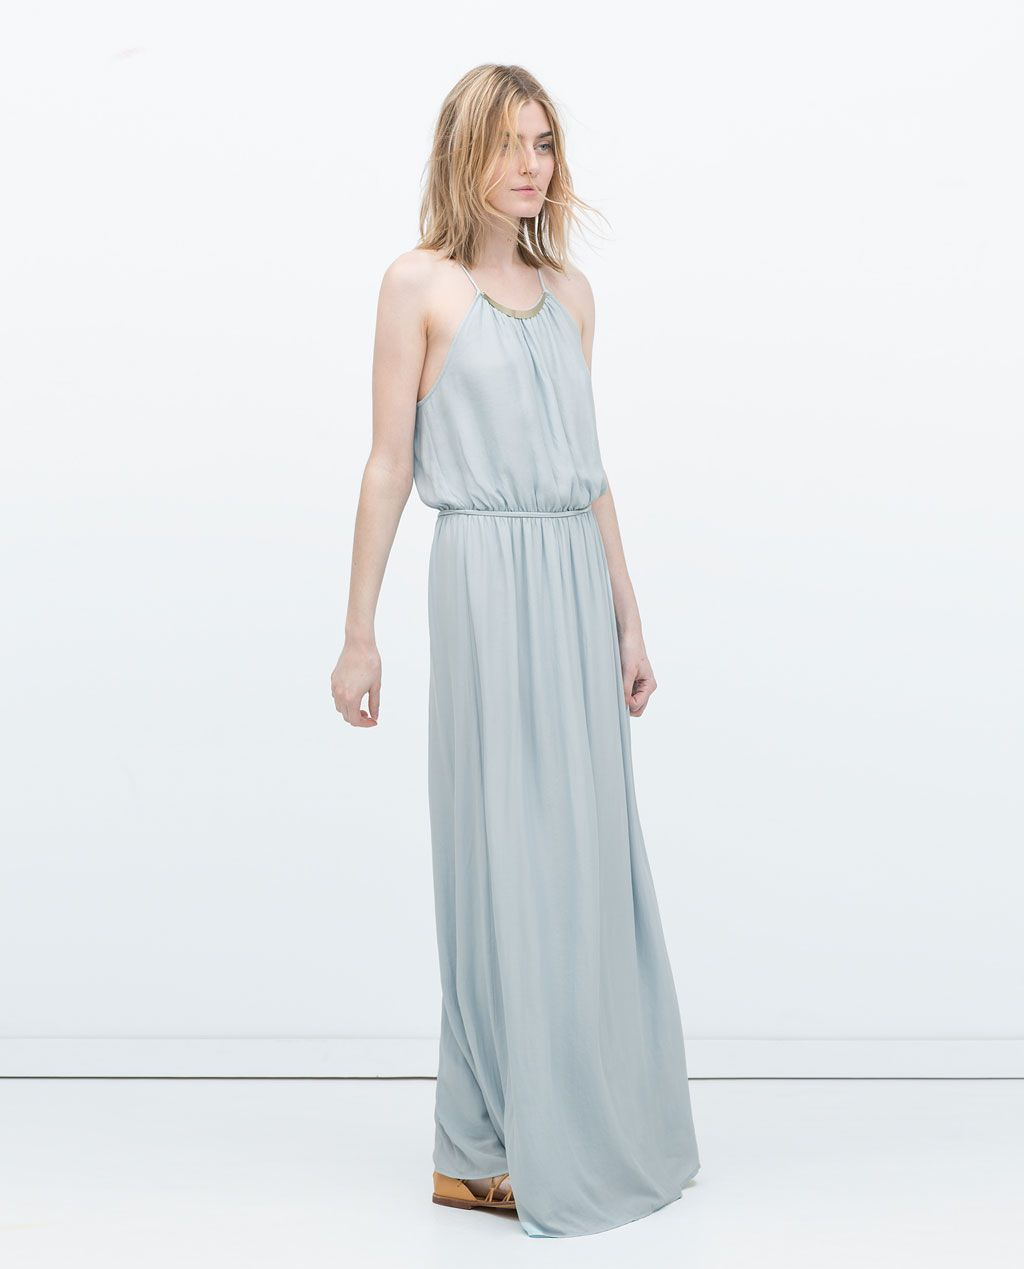 Long dress with appliqu neckline maxi dresses woman zara united want to find the perfect wedding or bridesmaid dress on a budget these 10 bride and bridesmaid shopping resources are the first places you should look ombrellifo Choice Image